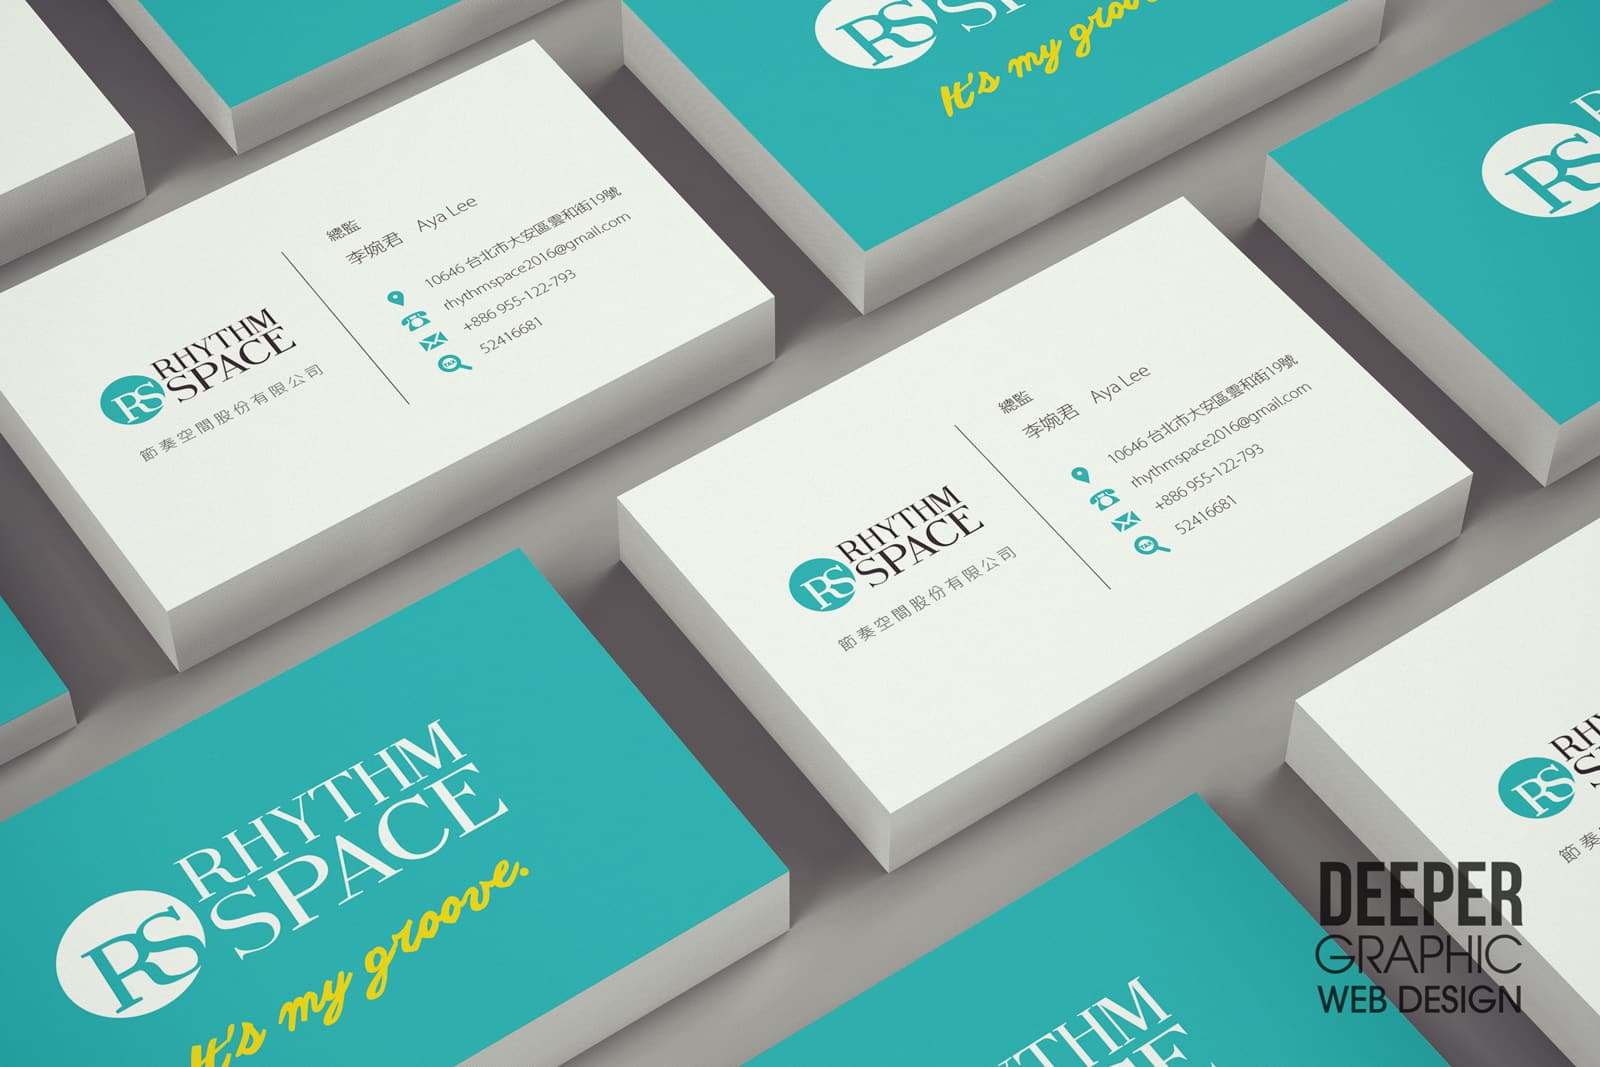 Business Card Design | Las Vegas Web Design + Las Vegas Graphic ...